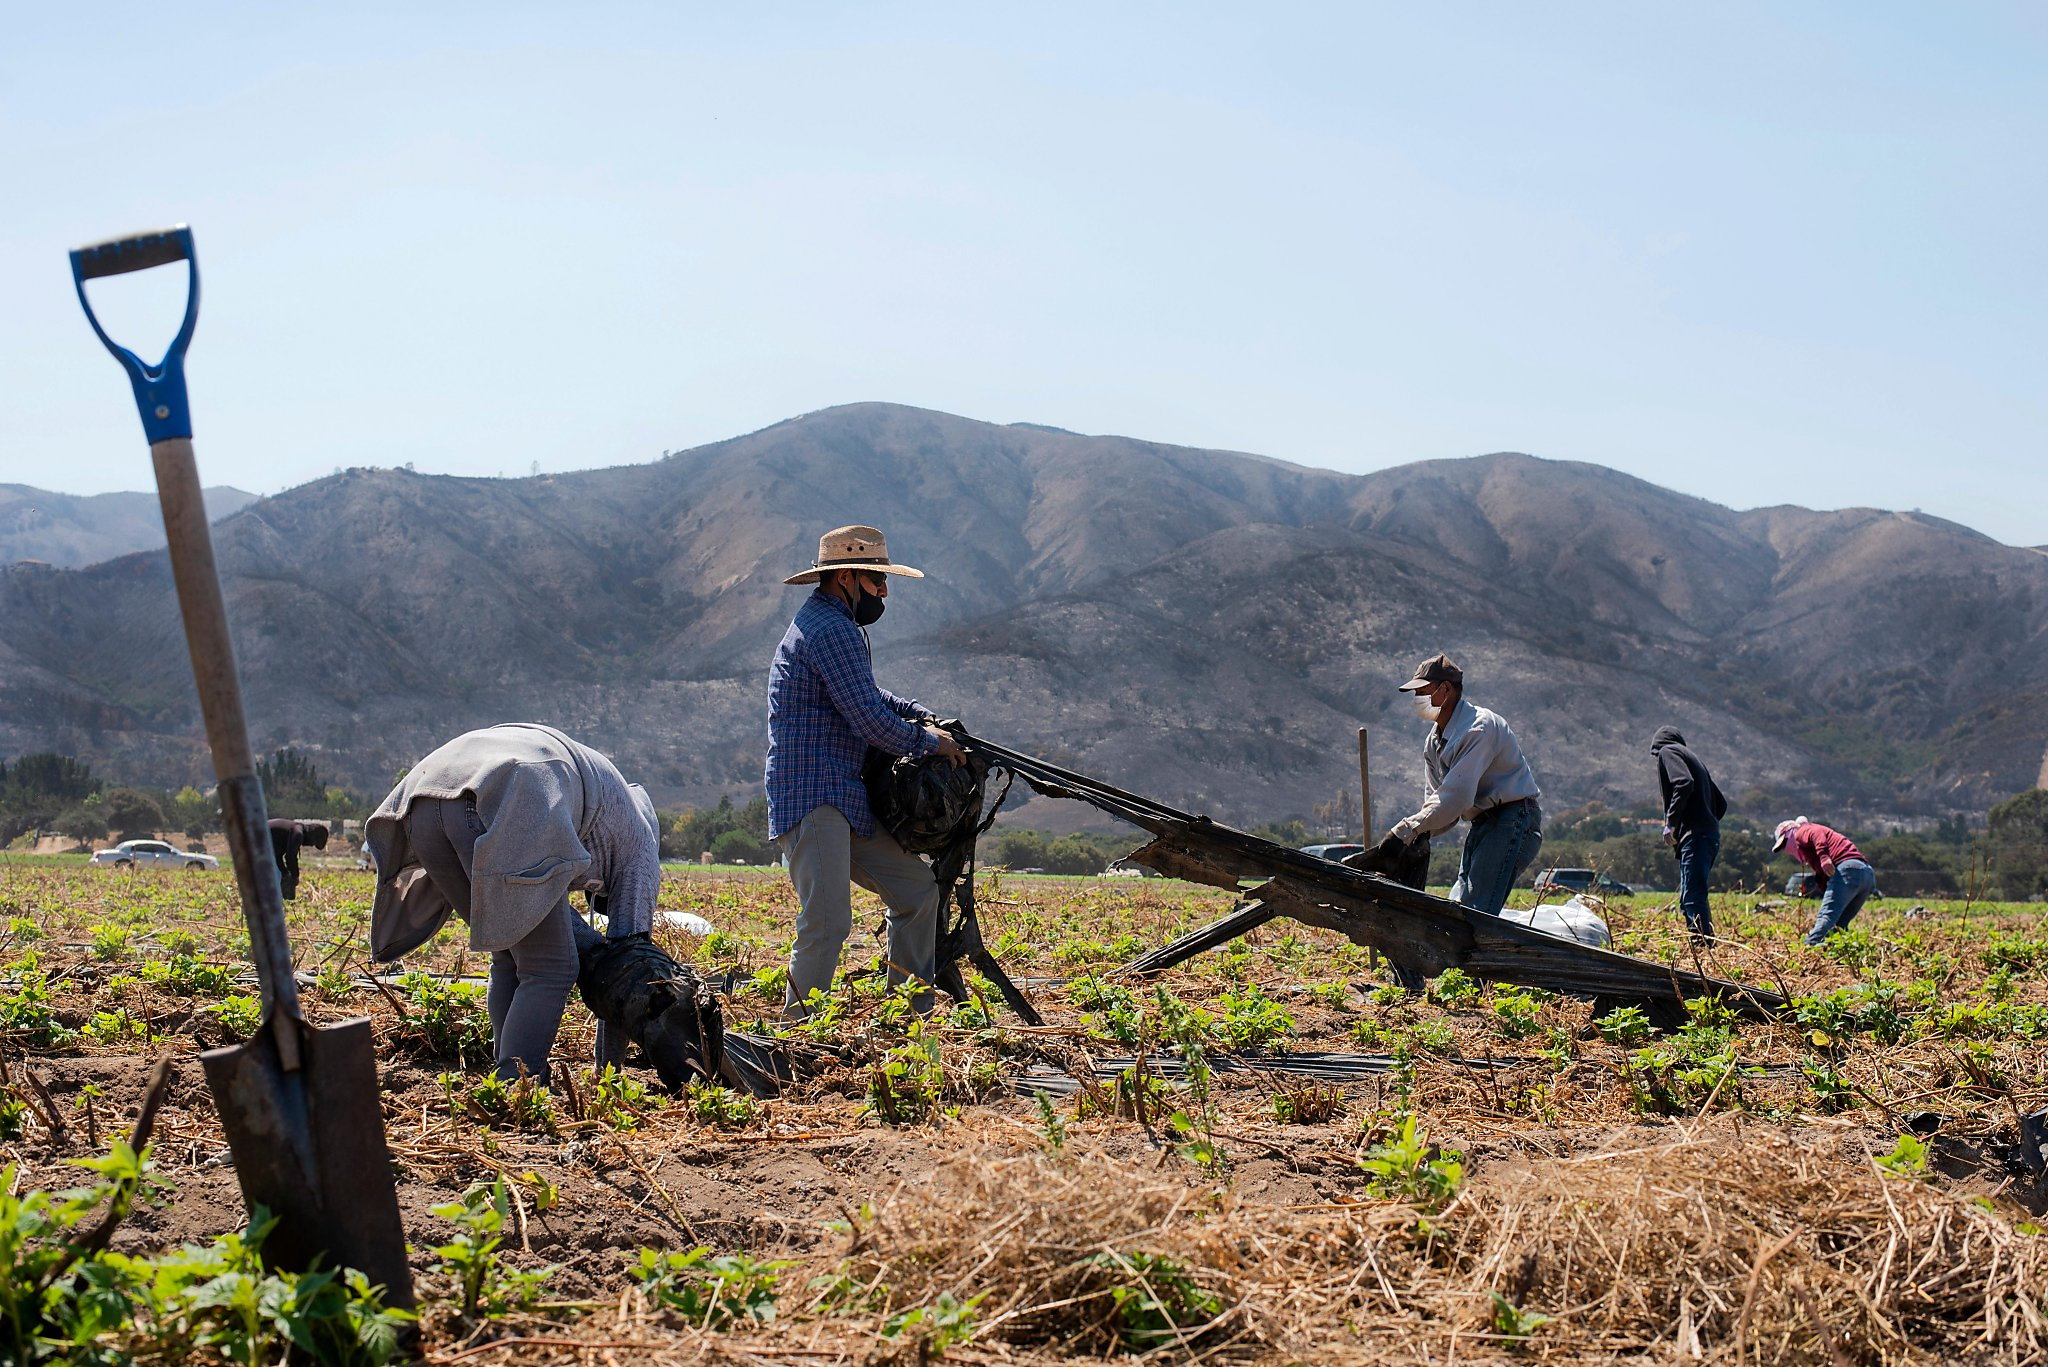 www.sfchronicle.com: U.S. Supreme Court to hear case on union access to farmworkers